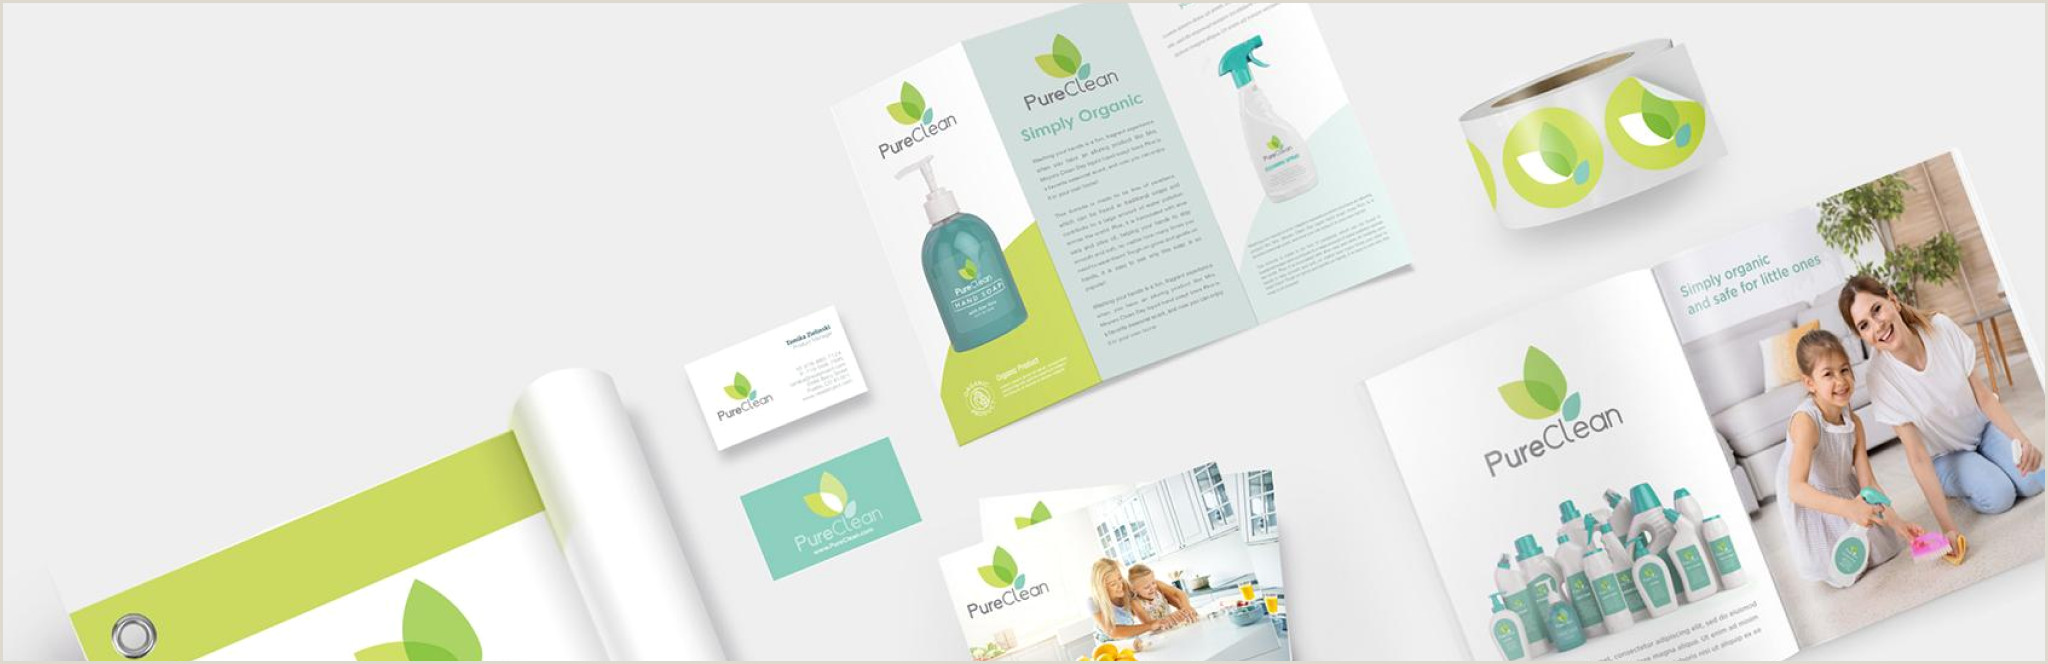 Where To Purchase Business Cards Printplace High Quality Line Printing Services